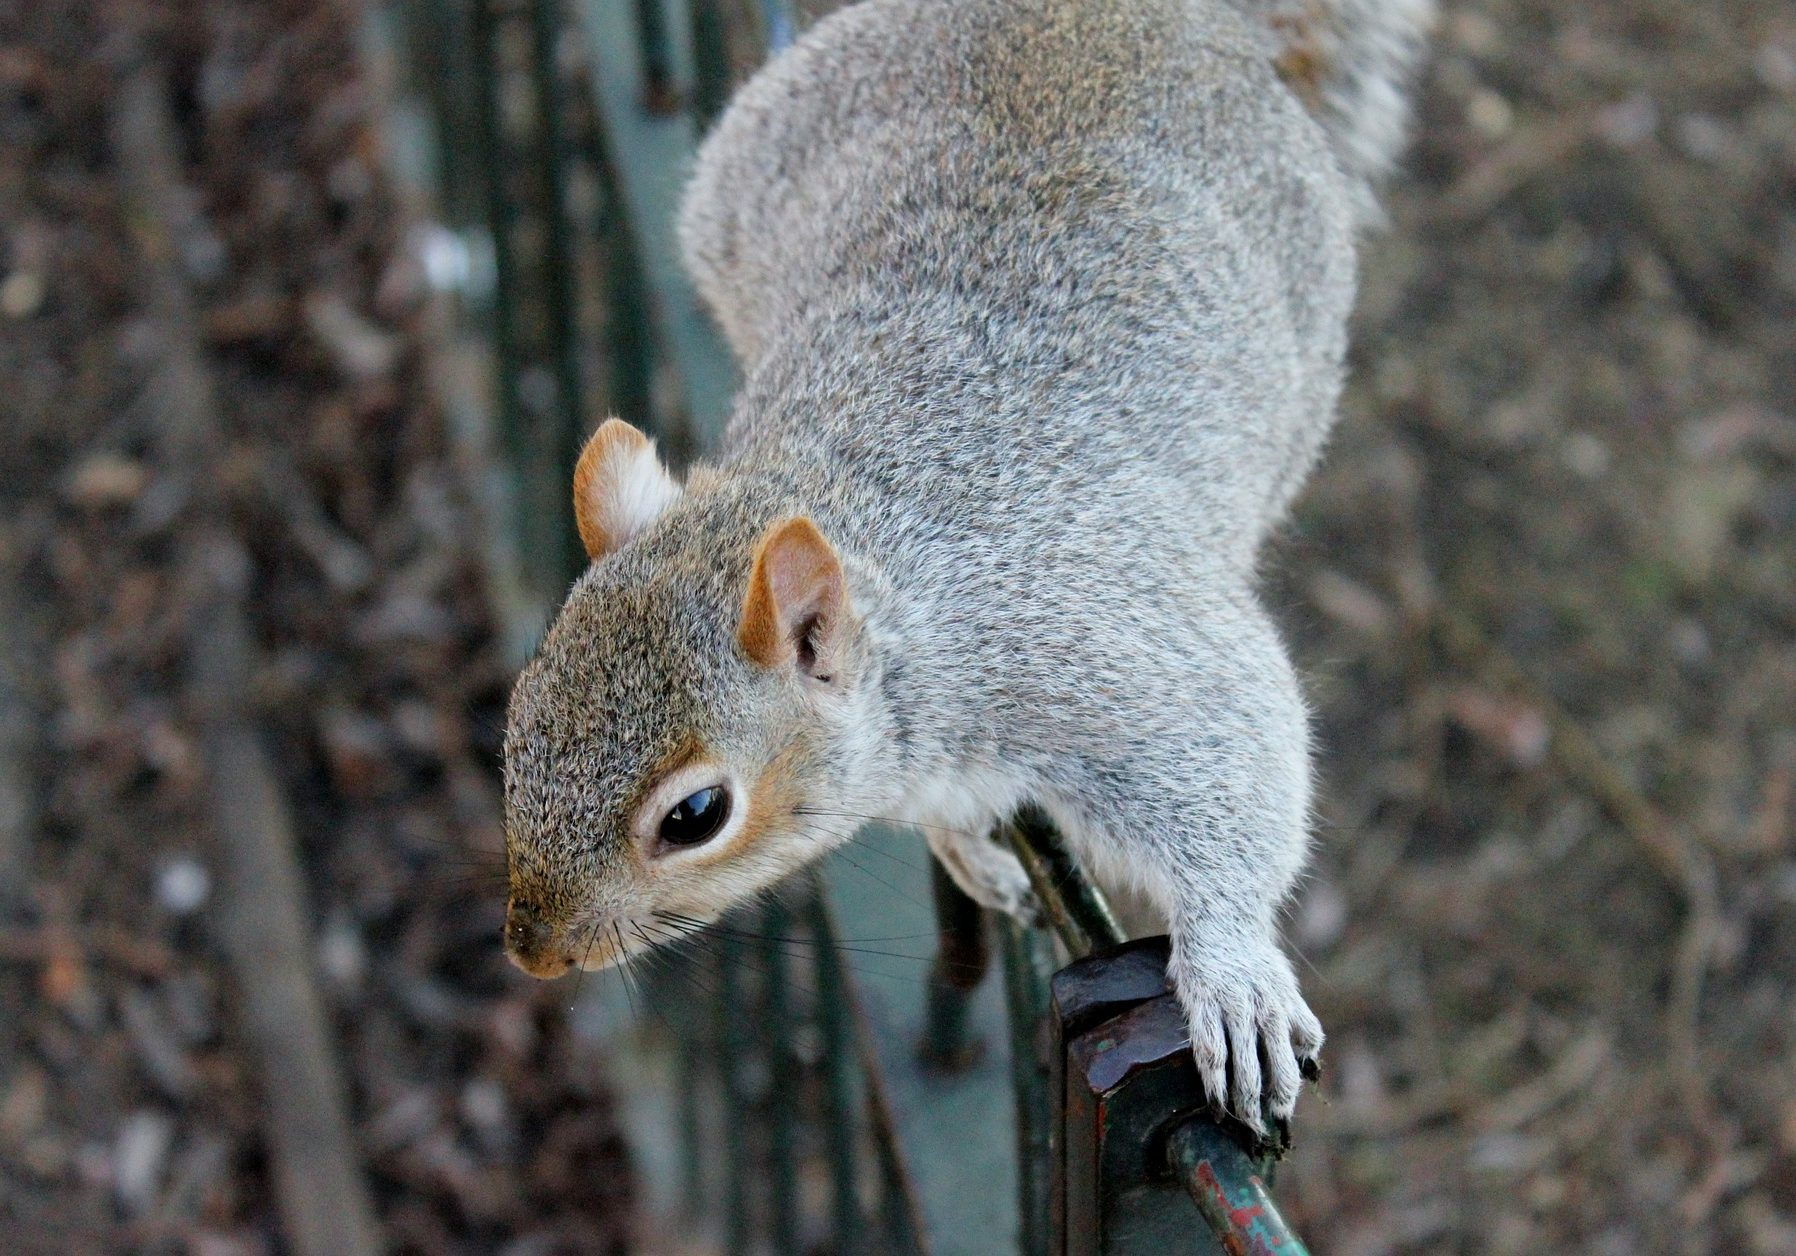 squirrel-111258_1920